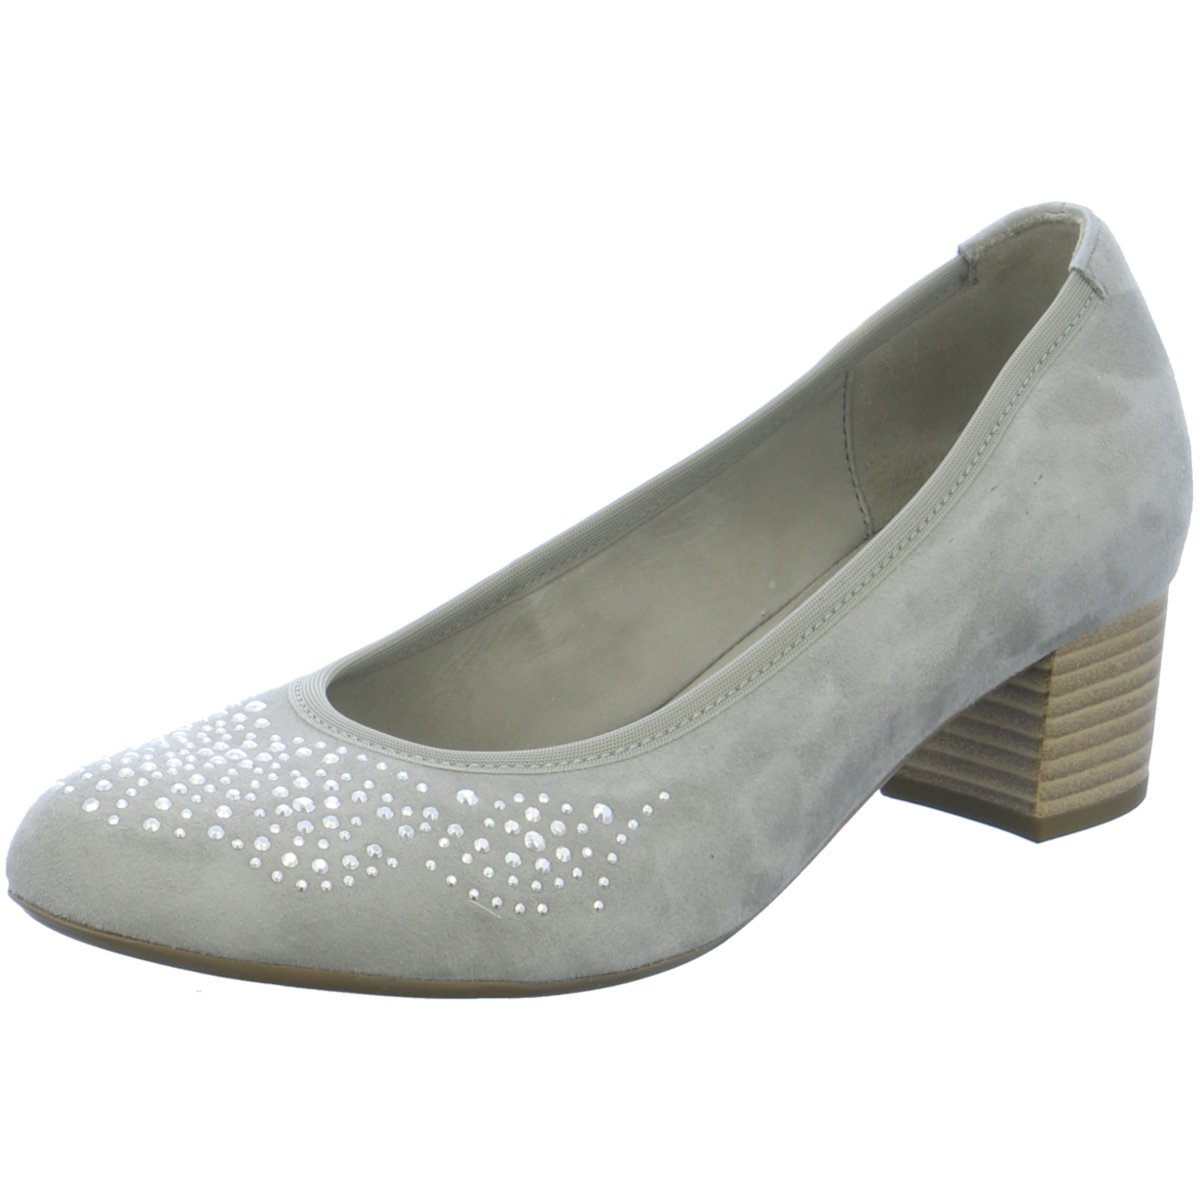 NEU Gabor Damen Pumps 65.381.19 001 grau 250350